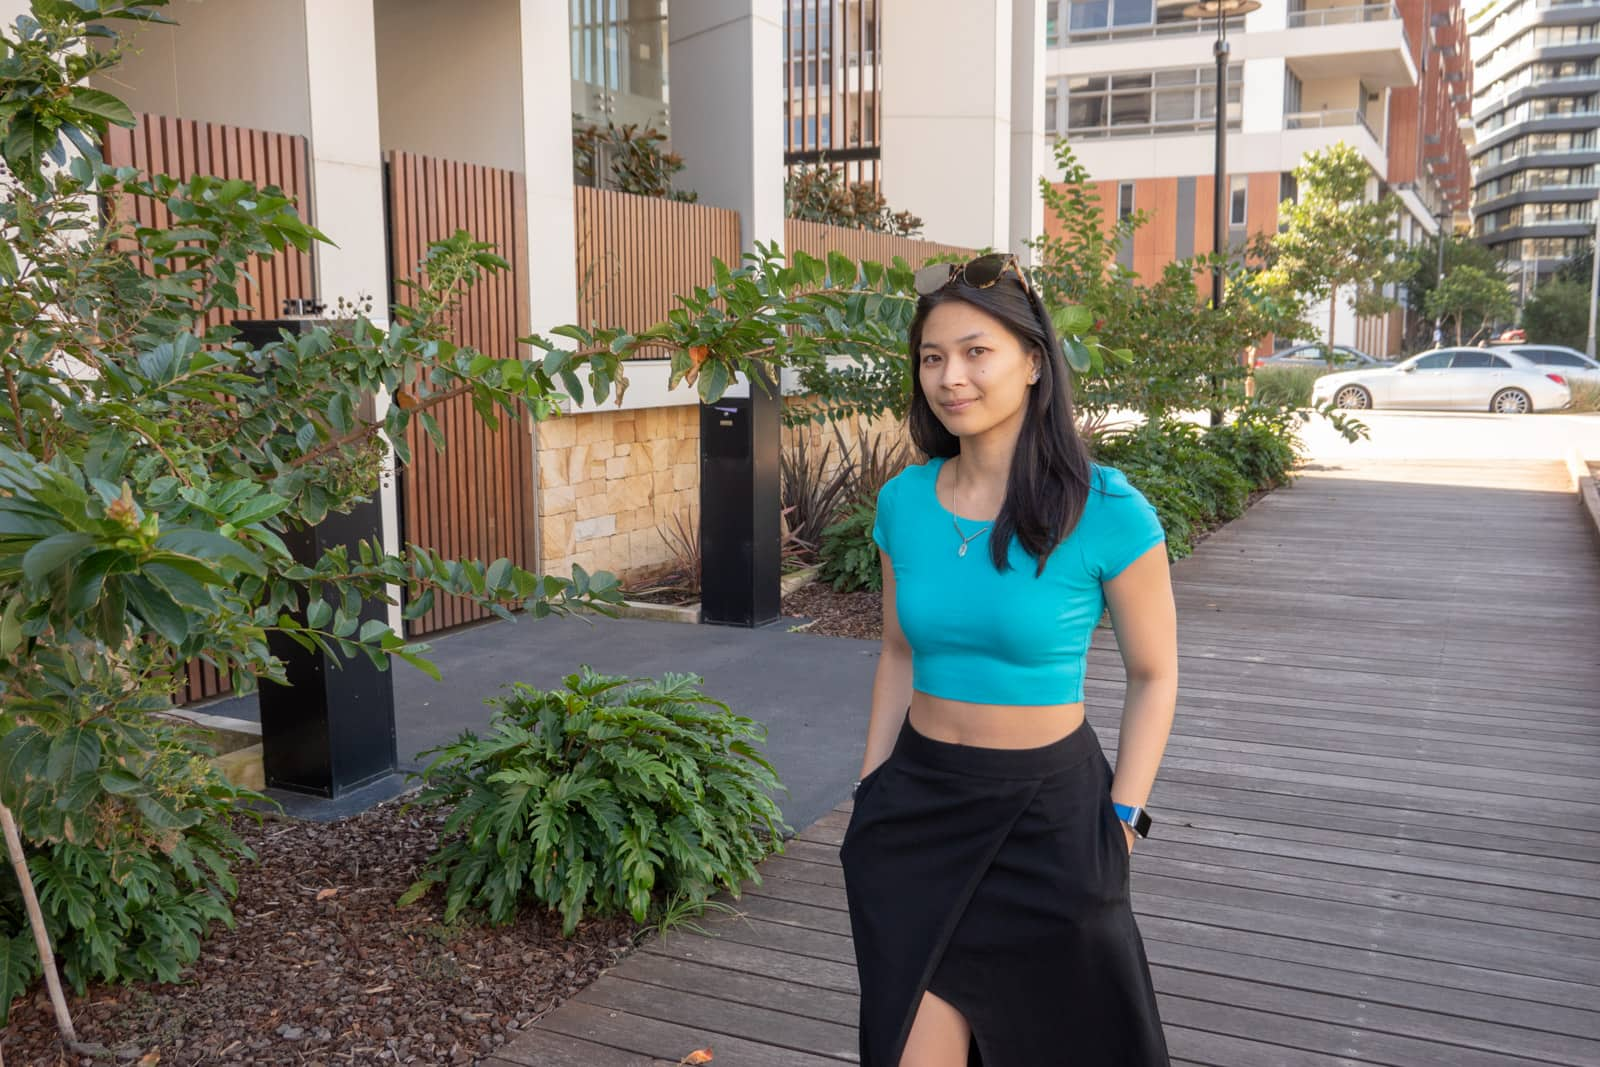 The same woman in other photos on this page, wearing the same outfit. She has her hands in her pockets and is standing on a wooden path. There are apartment buildings in the background